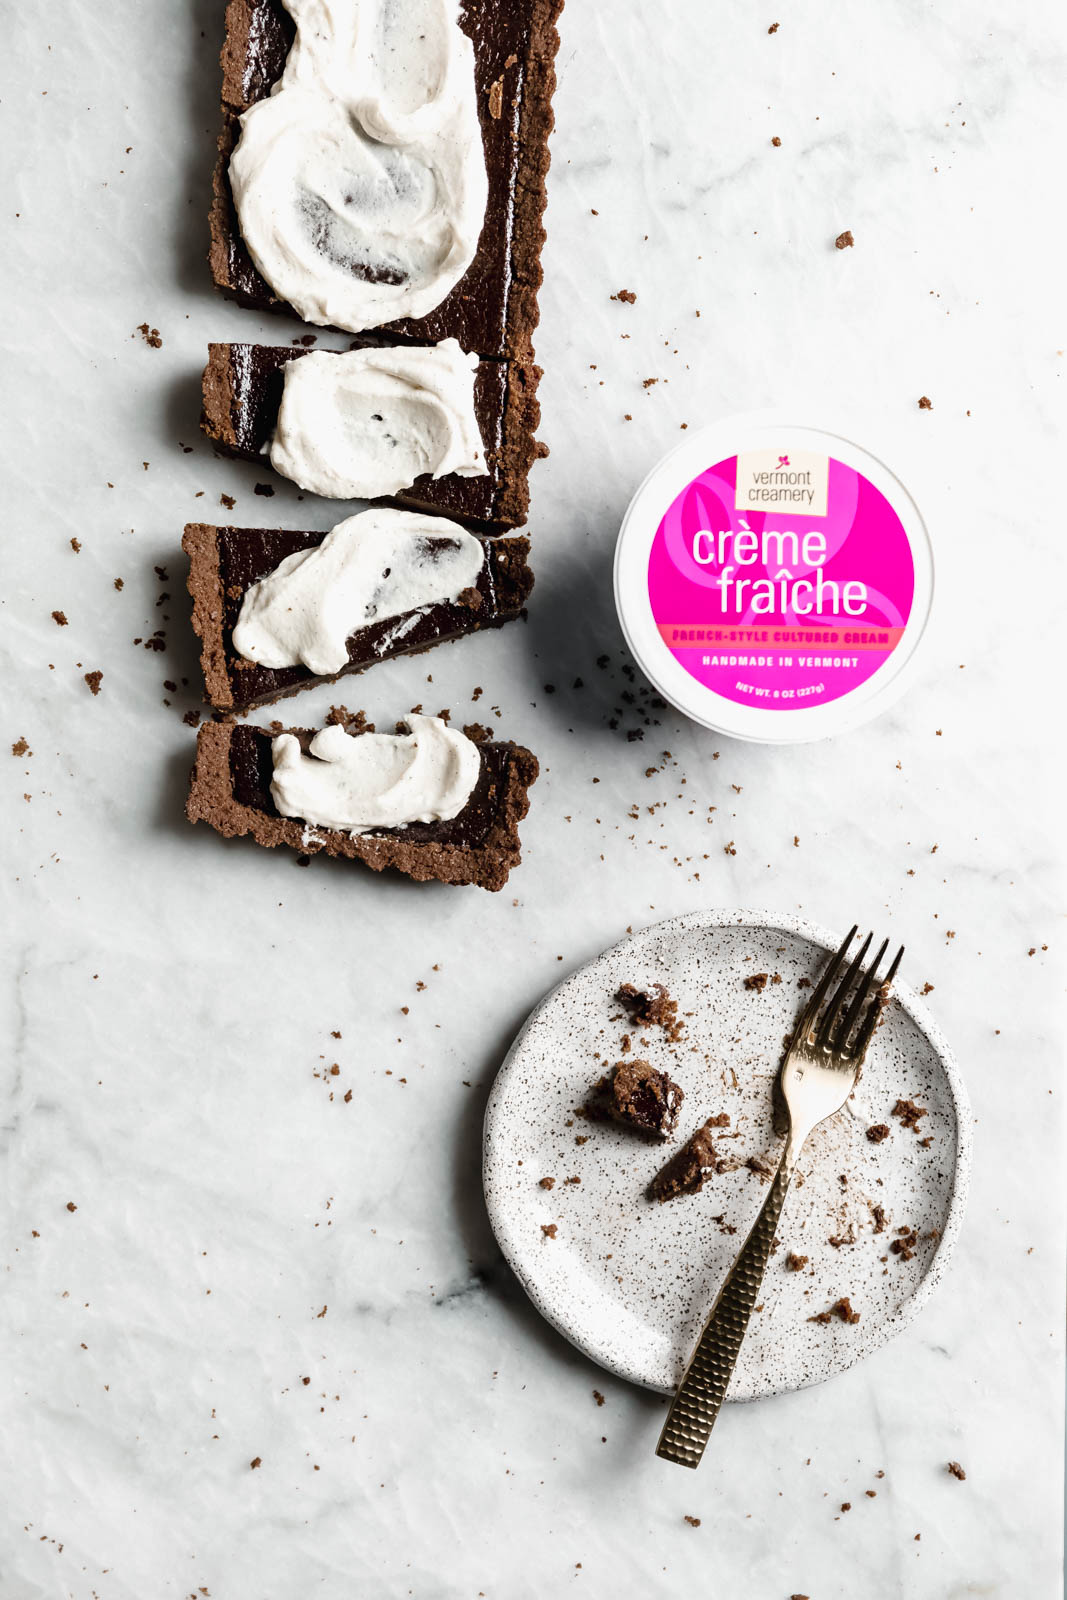 A Mocha Chocolate Tart made with a chocolate graham cracker crust, rich mocha filling, and topped with a crème fraîche whipped cream!